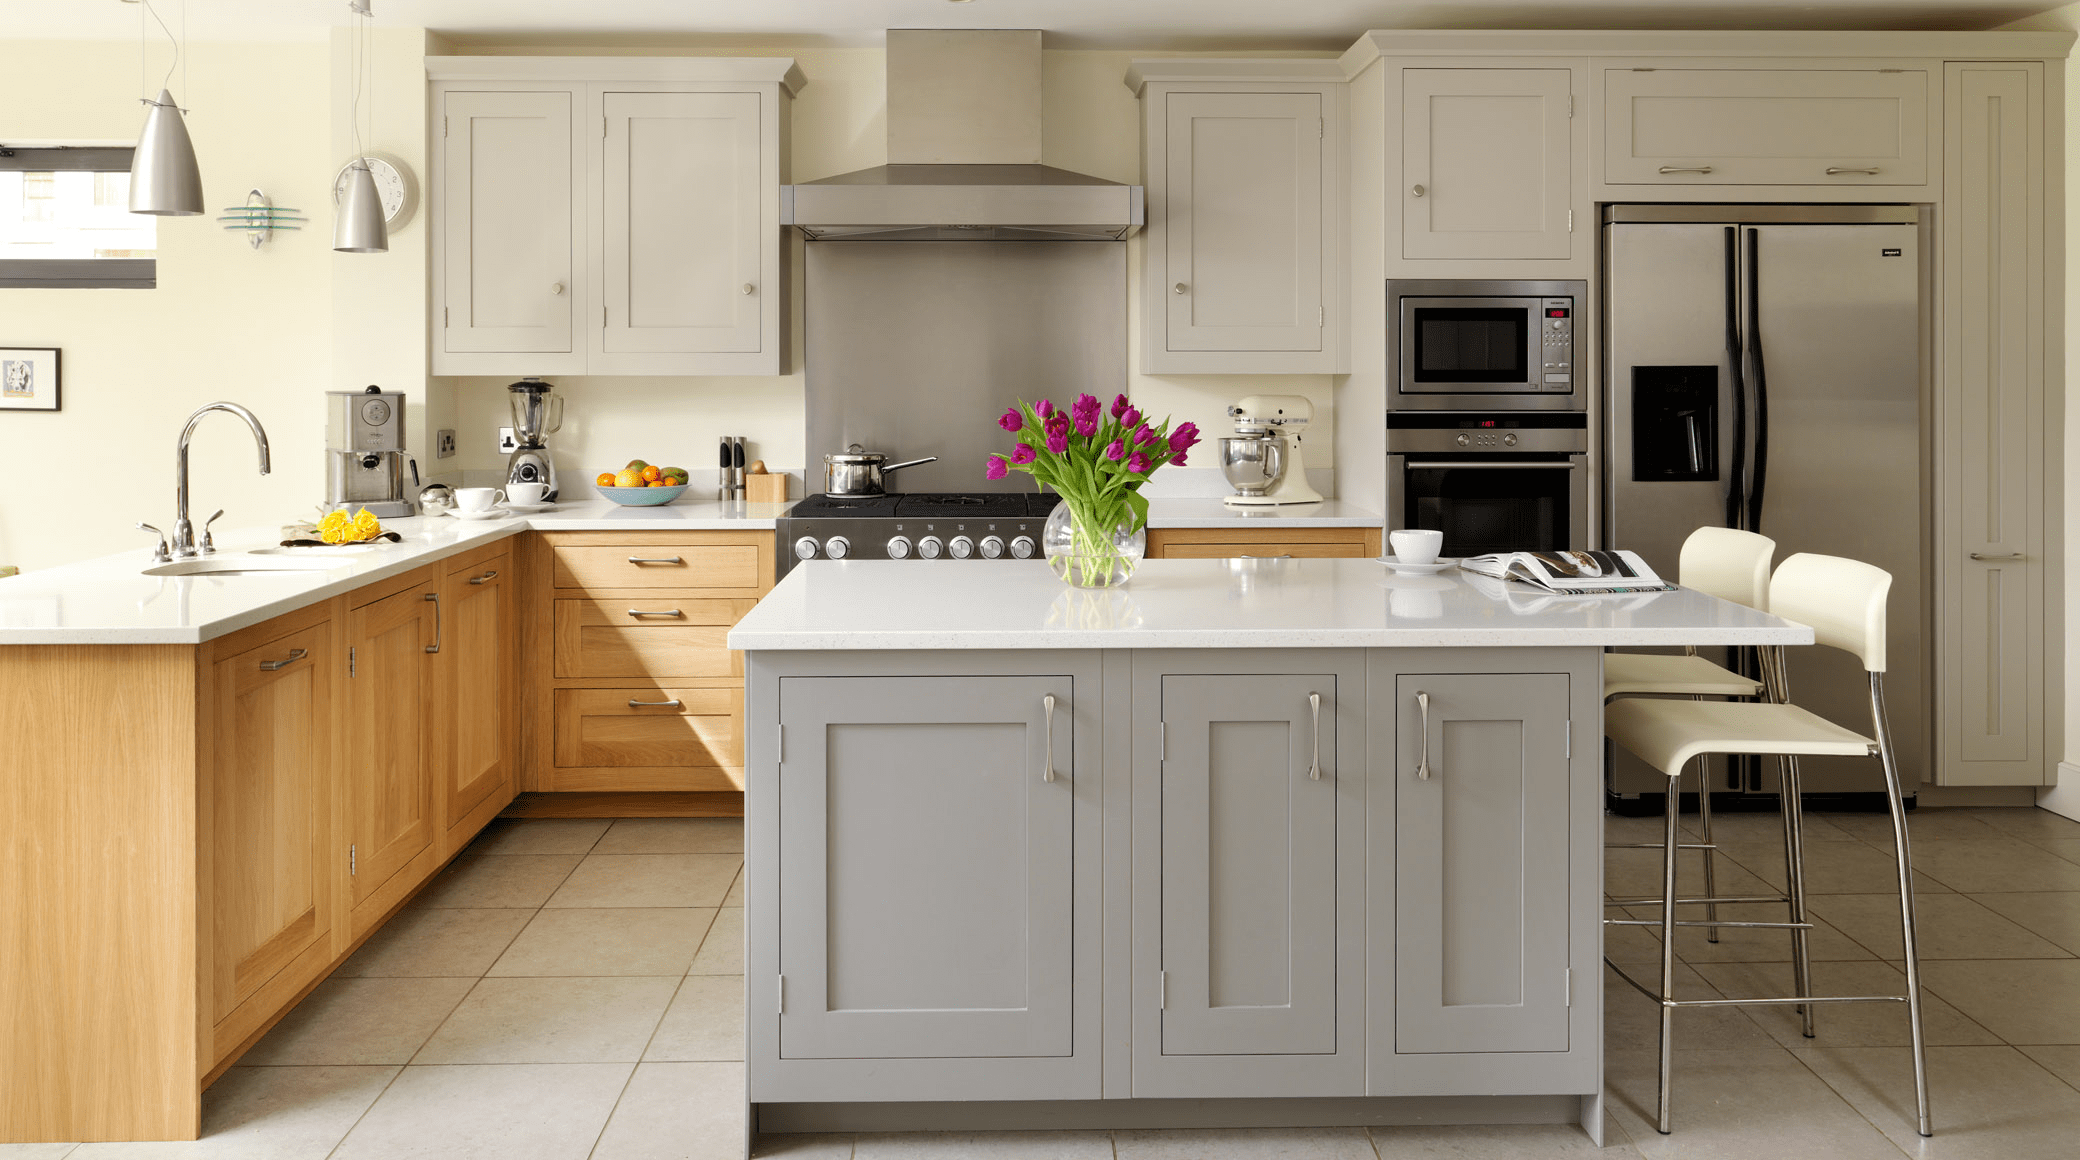 shaker kitchen cabinets birch cabinets and painted cabinets Kitchen Fascinating White Shaker